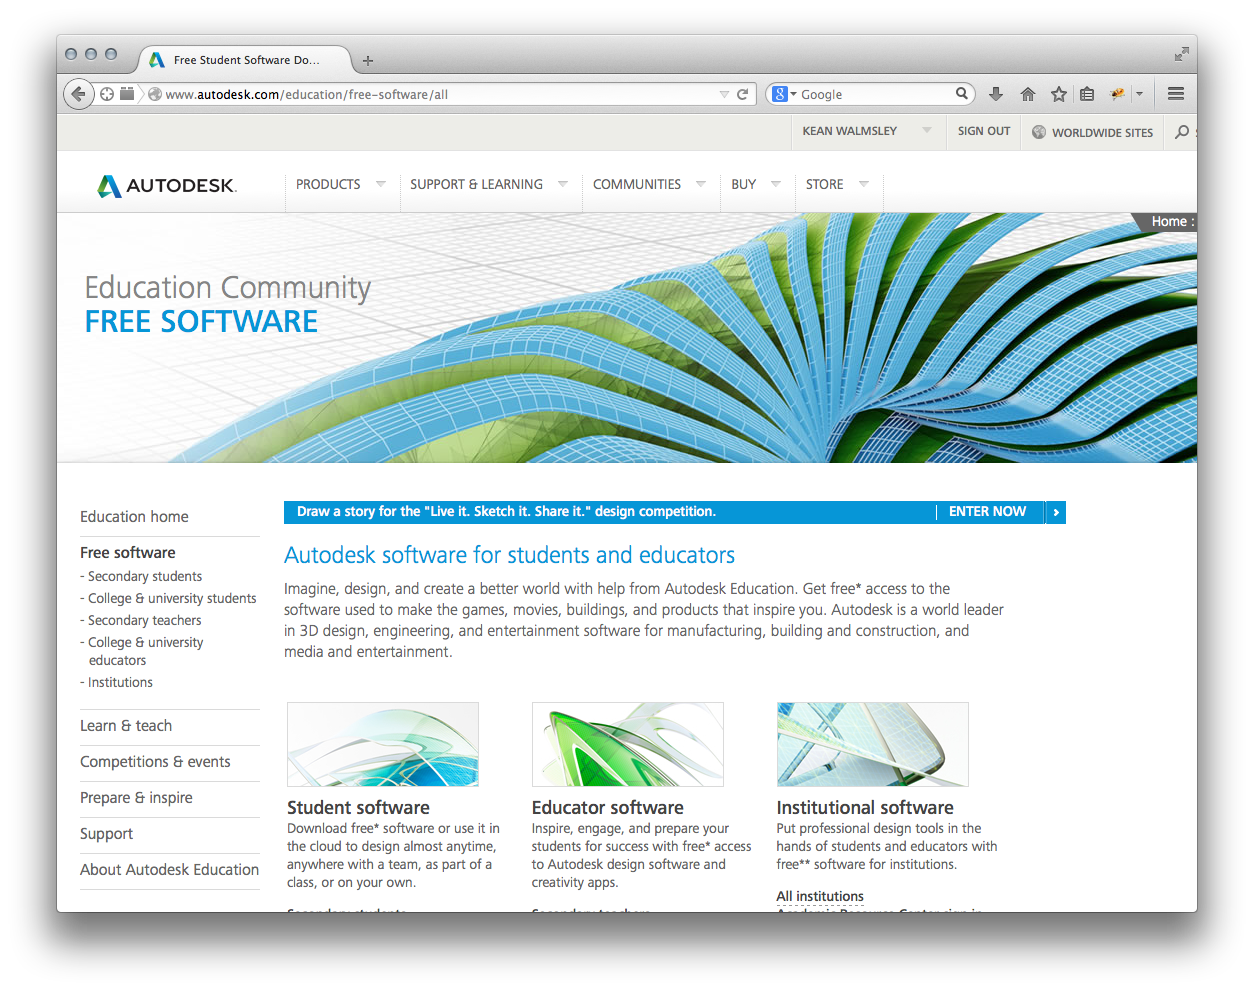 Free Autodesk software for students and educators - Through the